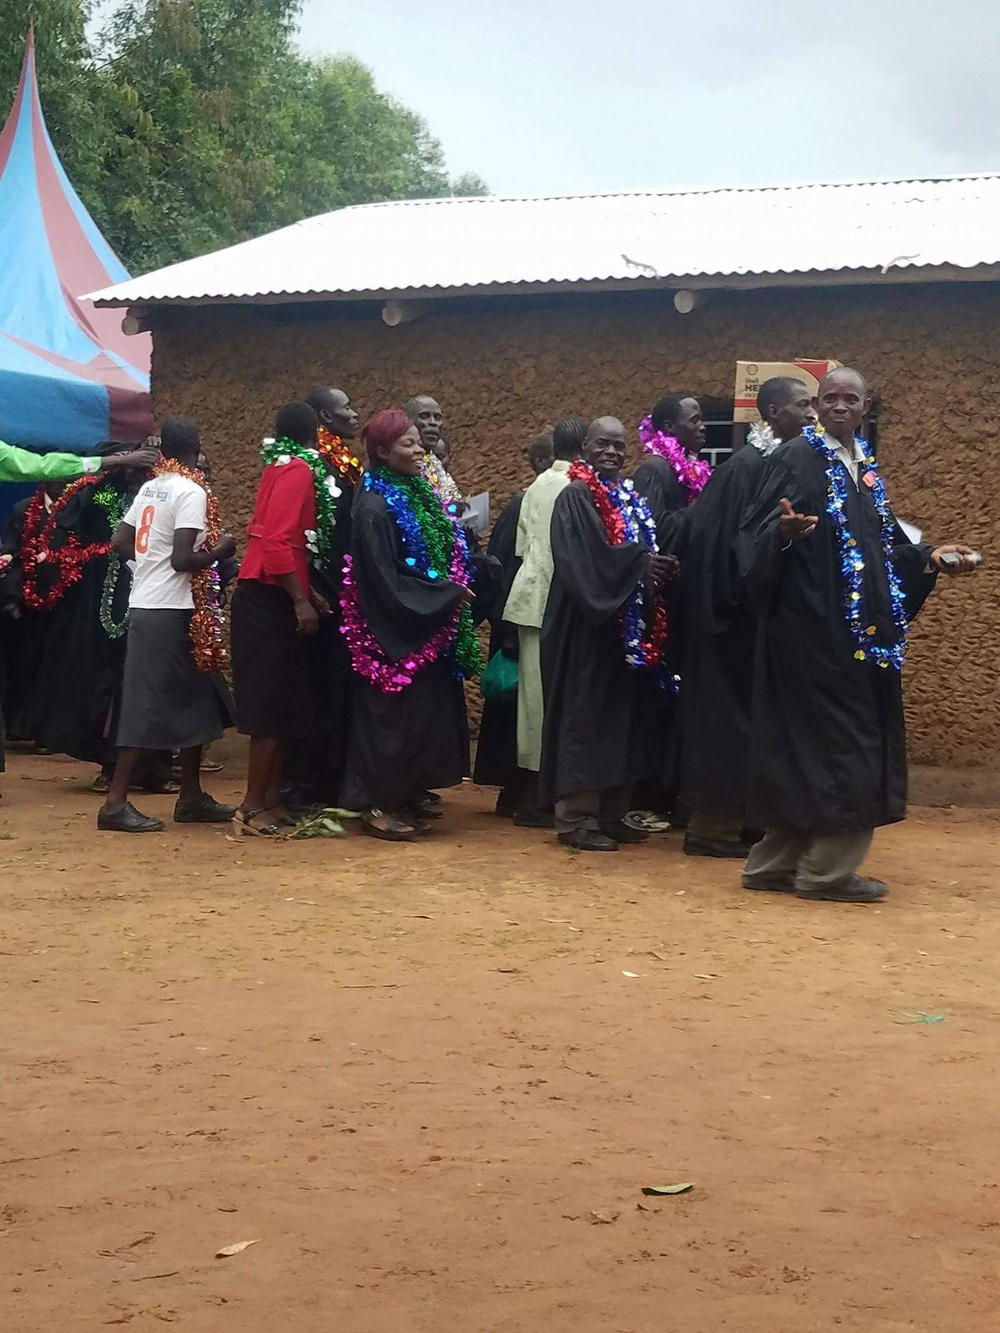 A recent Sharon Bible School graduation ceremony